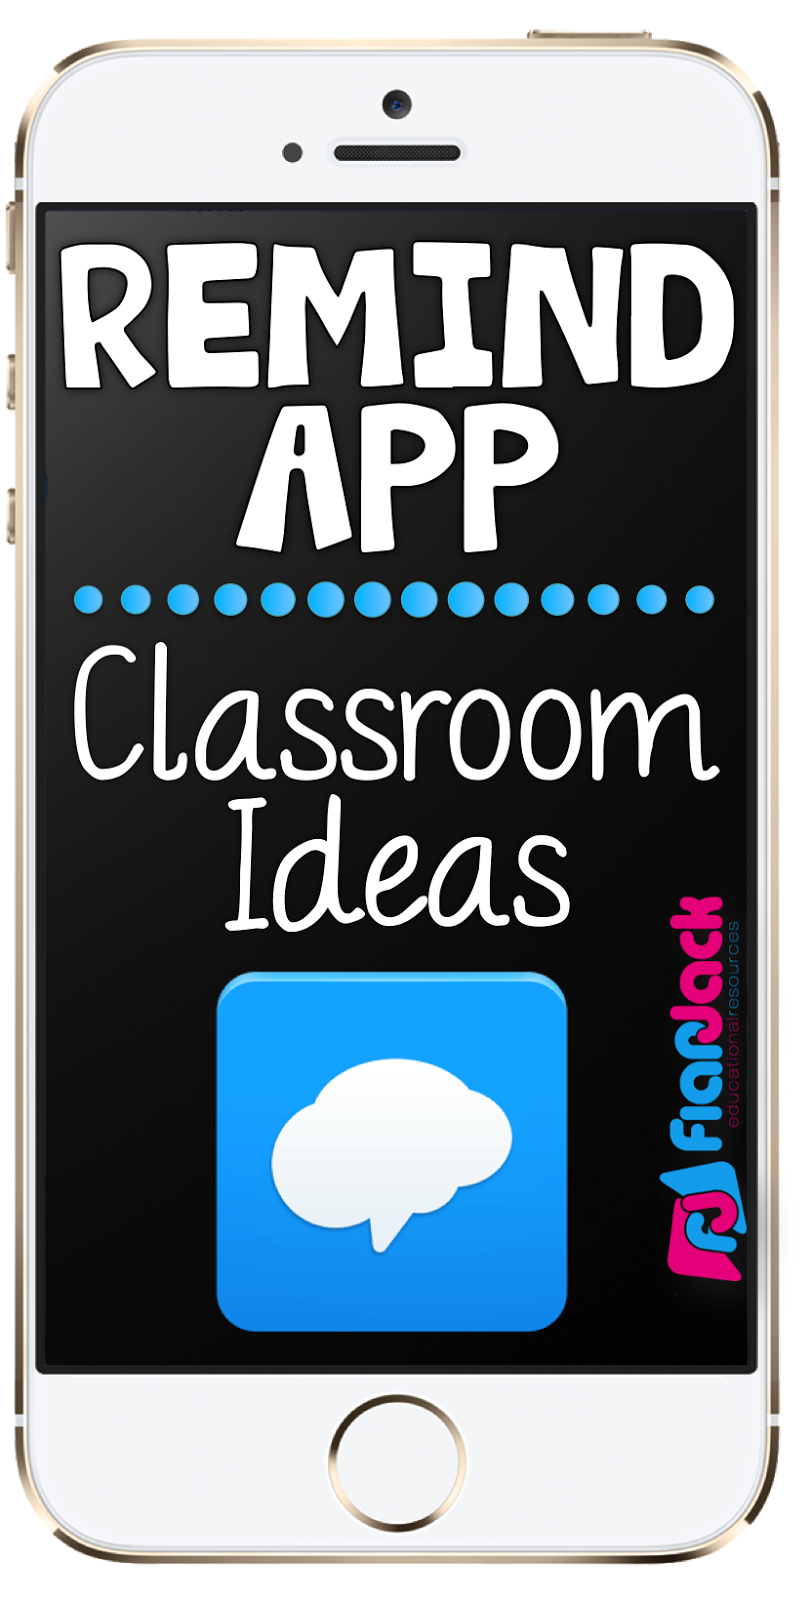 Remind app clipart picture transparent library FlapJack Educational Resources: Remind App Classroom Ideas picture transparent library